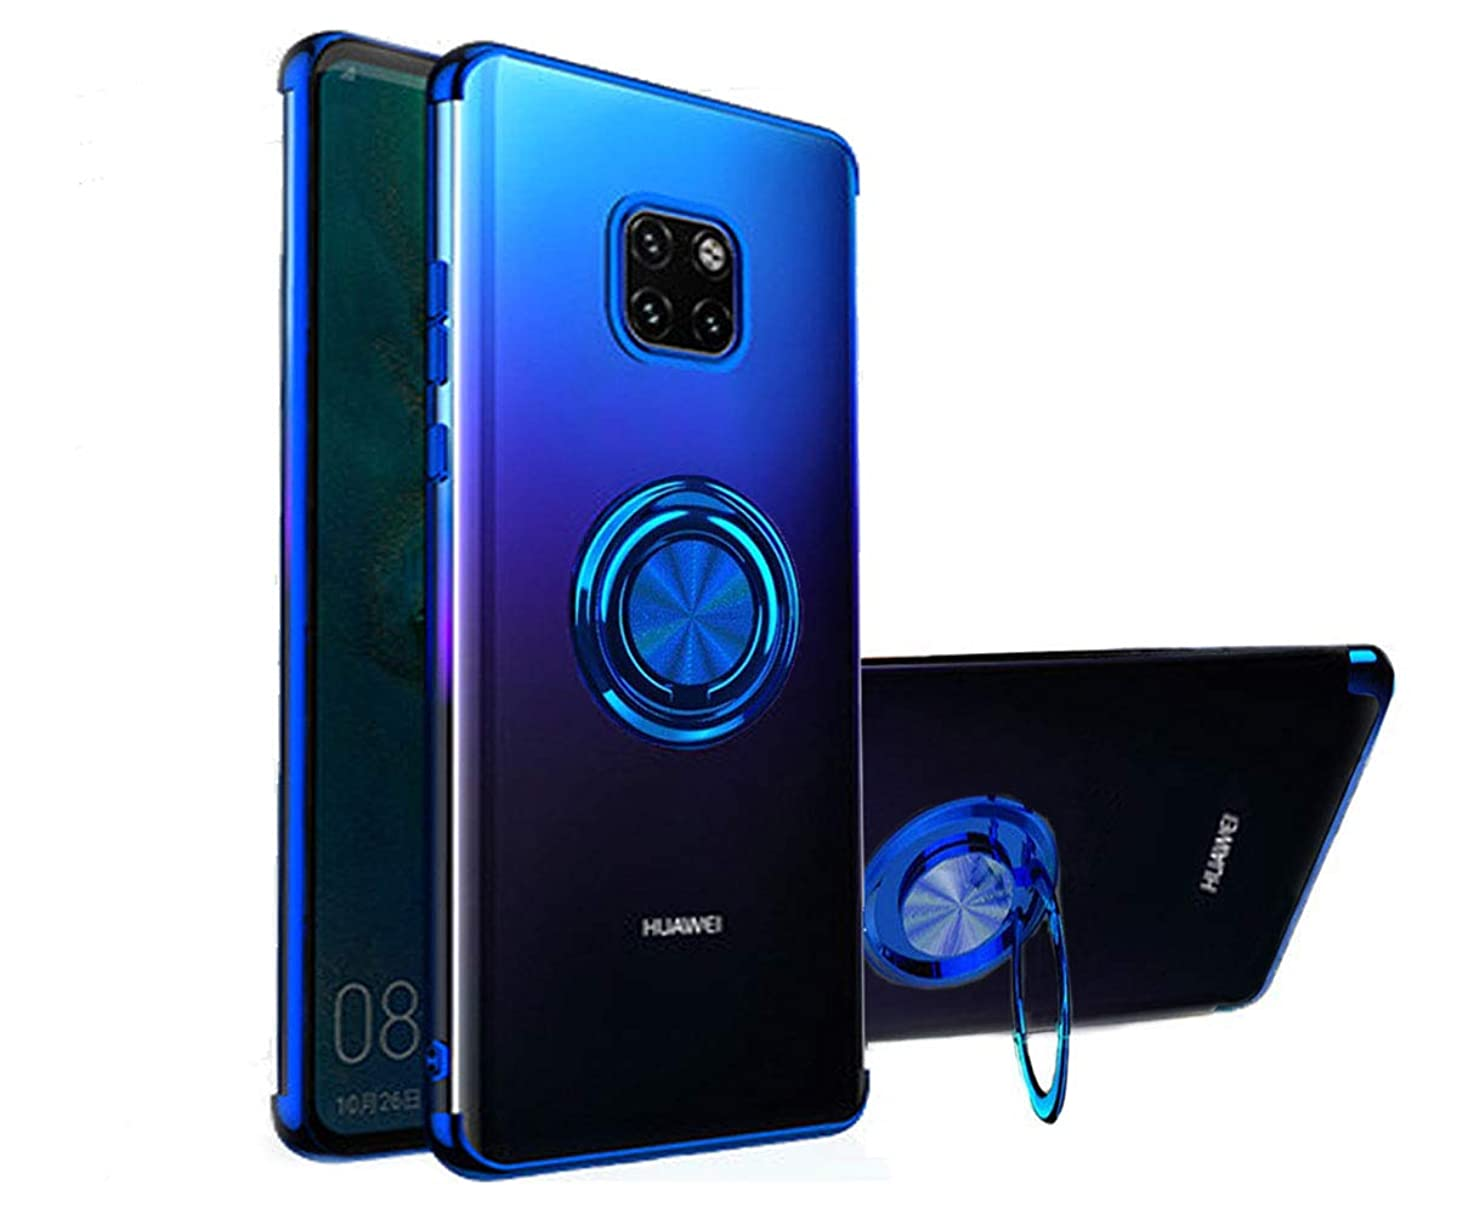 Huawei Mate 20 Pro Case, [360° Ring Stand ] Crystal Clear [Electroplated Metal Technology] Silicone Soft TPU [Shockproof Protection] Ultra Thin Cover for Huawei Mate 20 Pro (Blue, Mate 20 Pro)